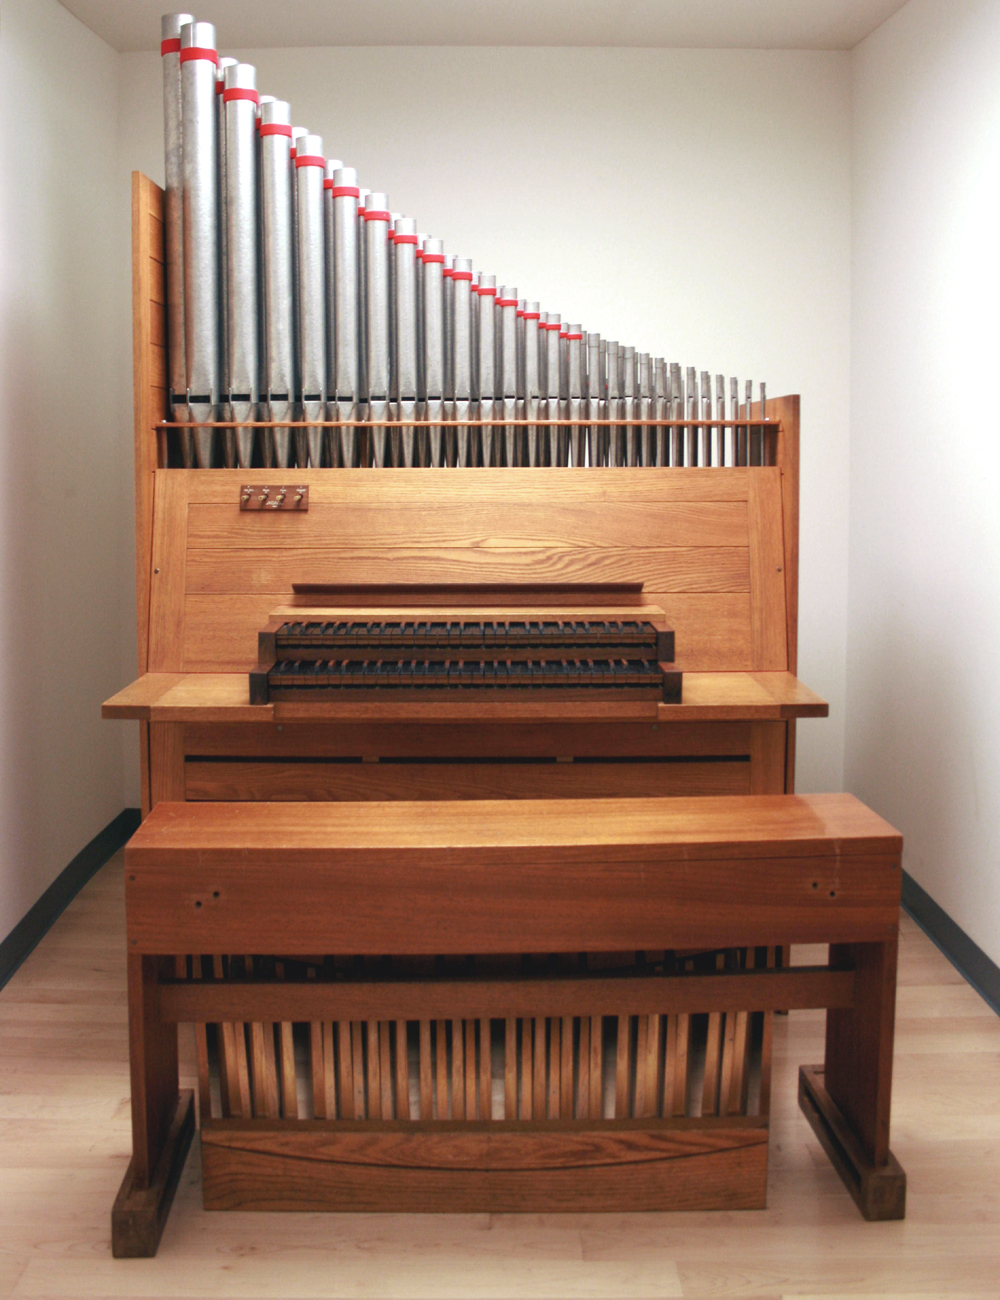 Noack Organ (1969) at The Juilliard School - New York City  (photo: Steven E. Lawson)